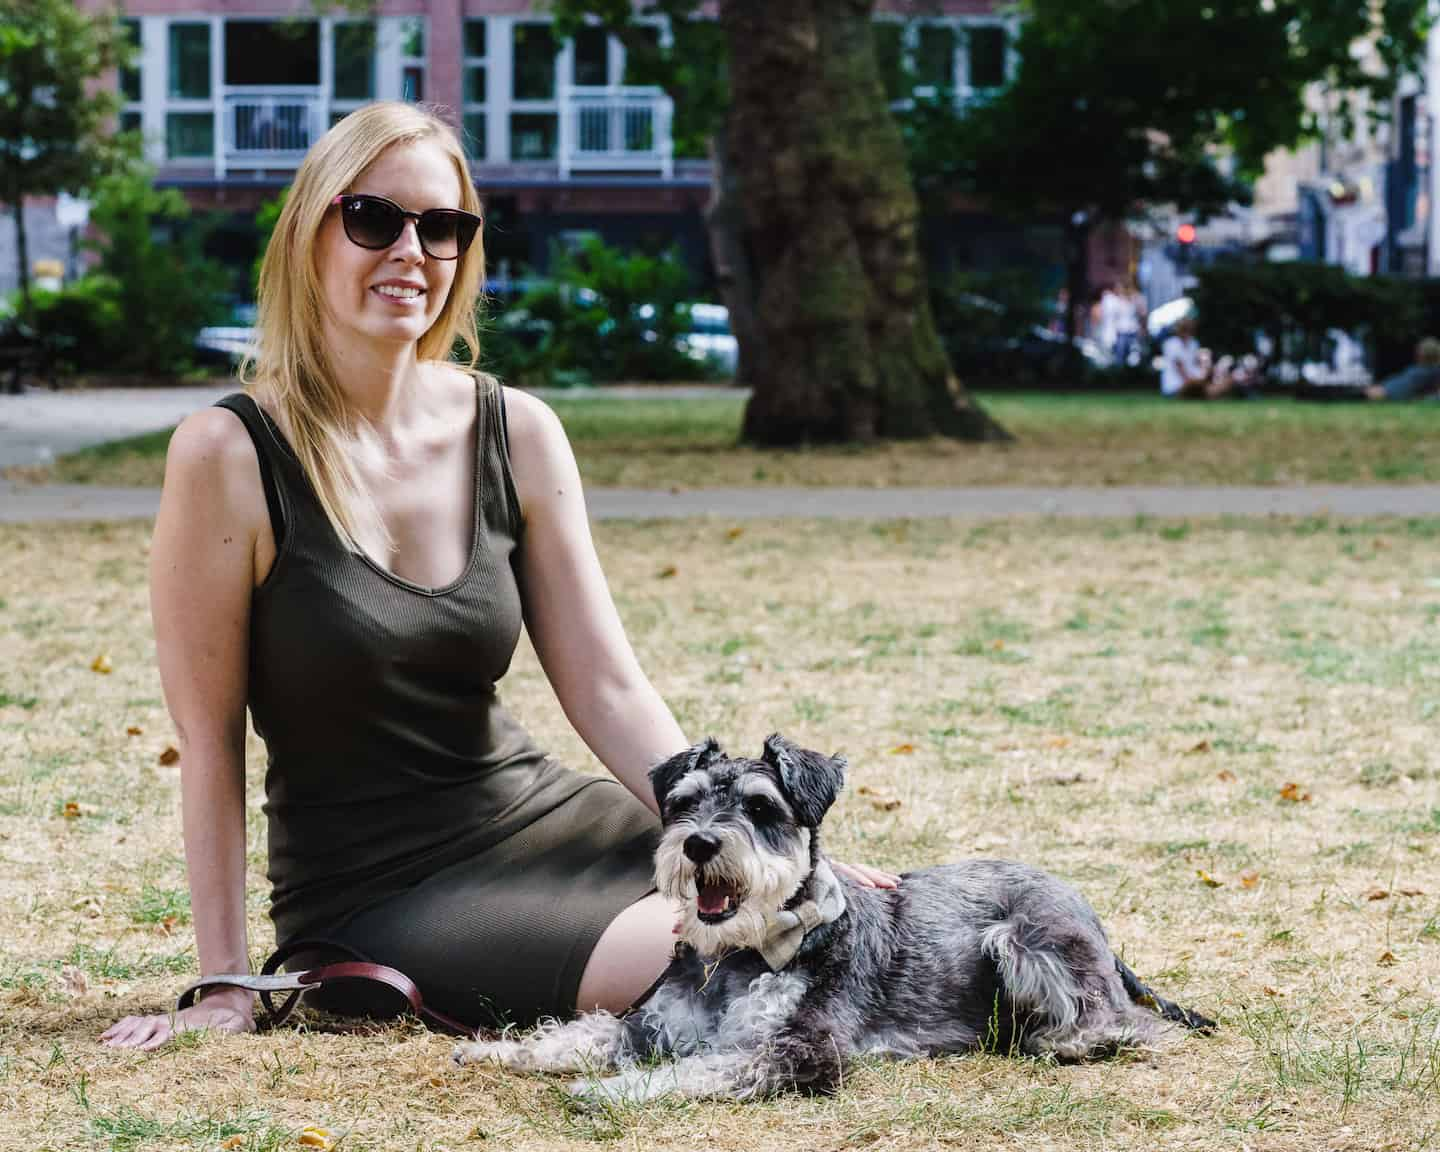 My Dog Friendly London By Rusty Red The Schnauzer | Dog Friendly Shoreditch and Hoxton Victoria Park